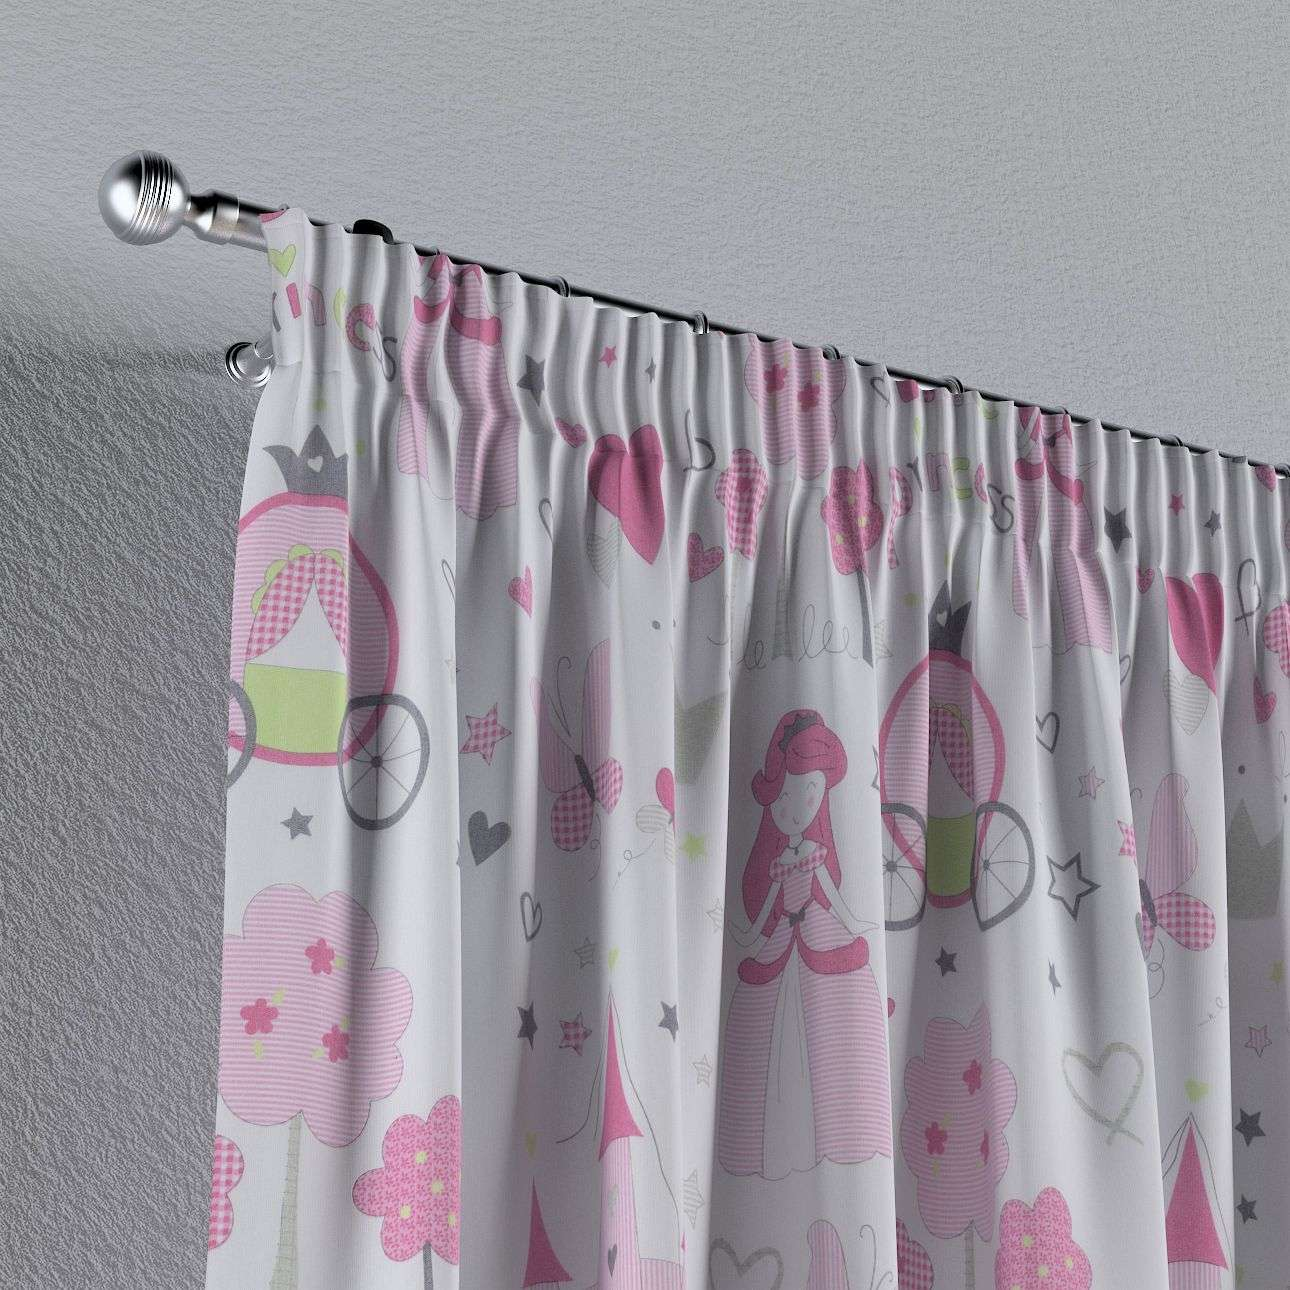 Pencil pleat curtains 130 × 260 cm (51 × 102 inch) in collection Little World, fabric: 141-28